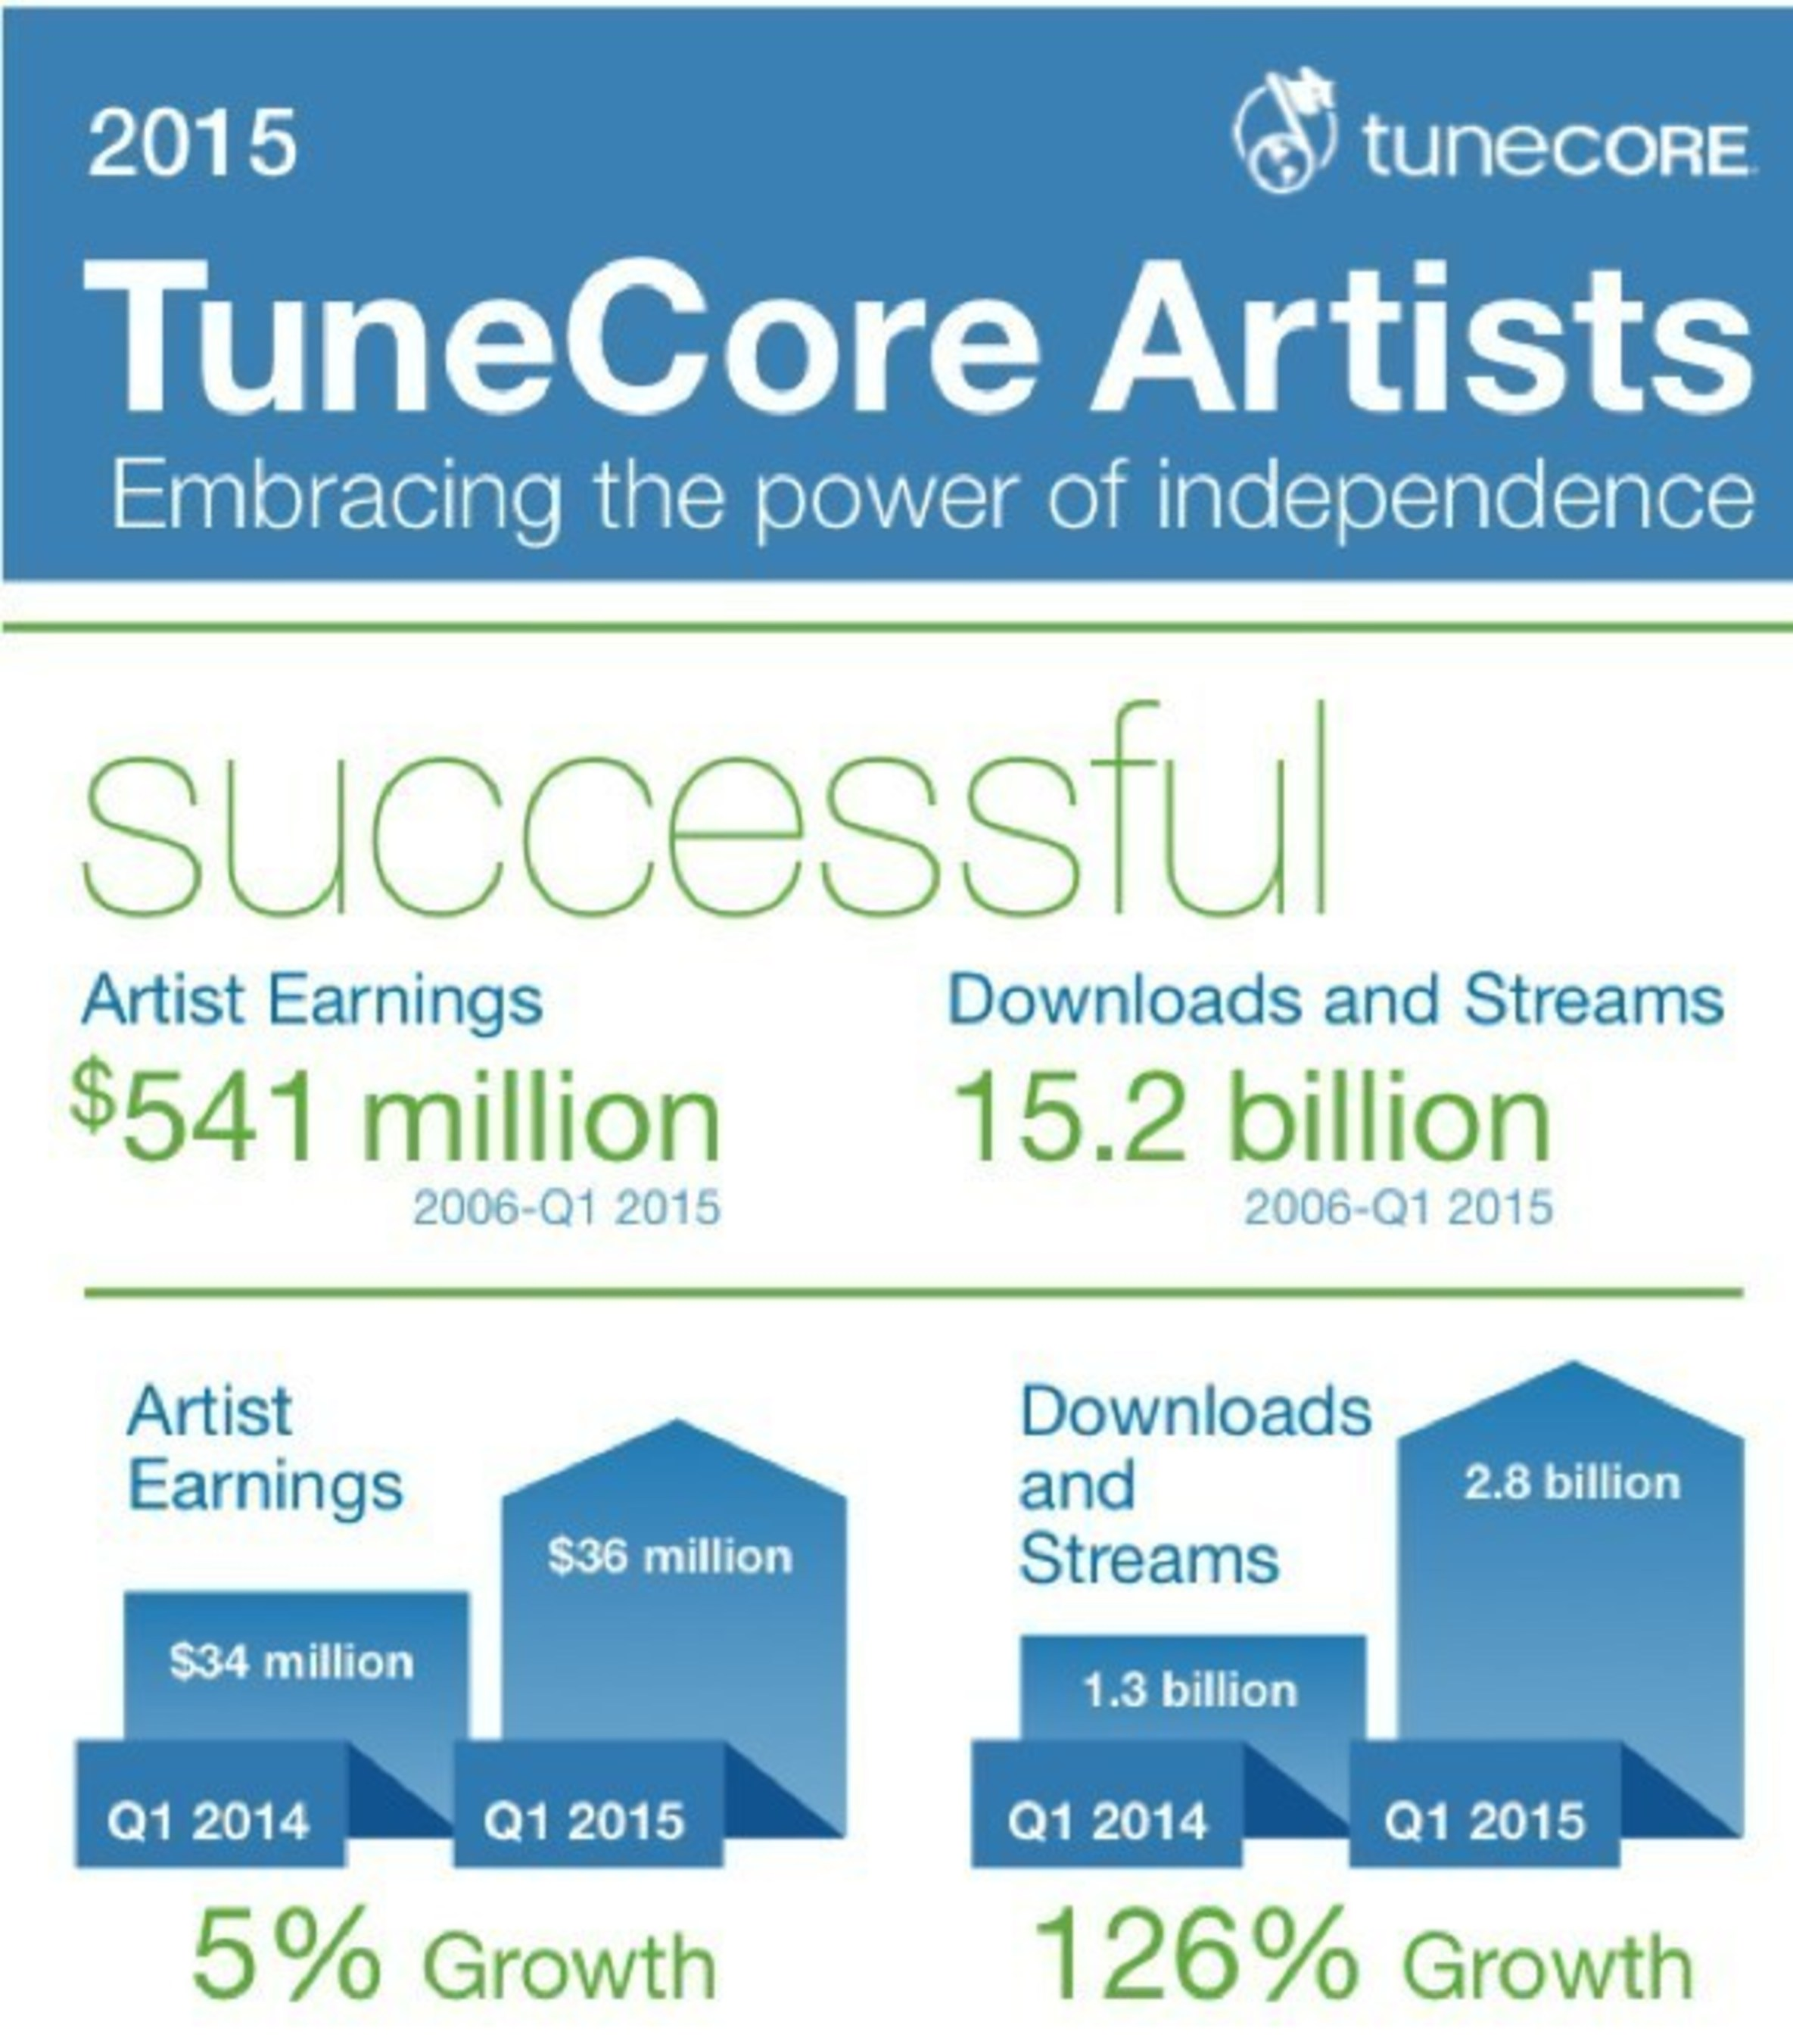 TuneCore Artists earn more than $36 million in Q1 of 2015, a 5% increase versus the same time 2014.